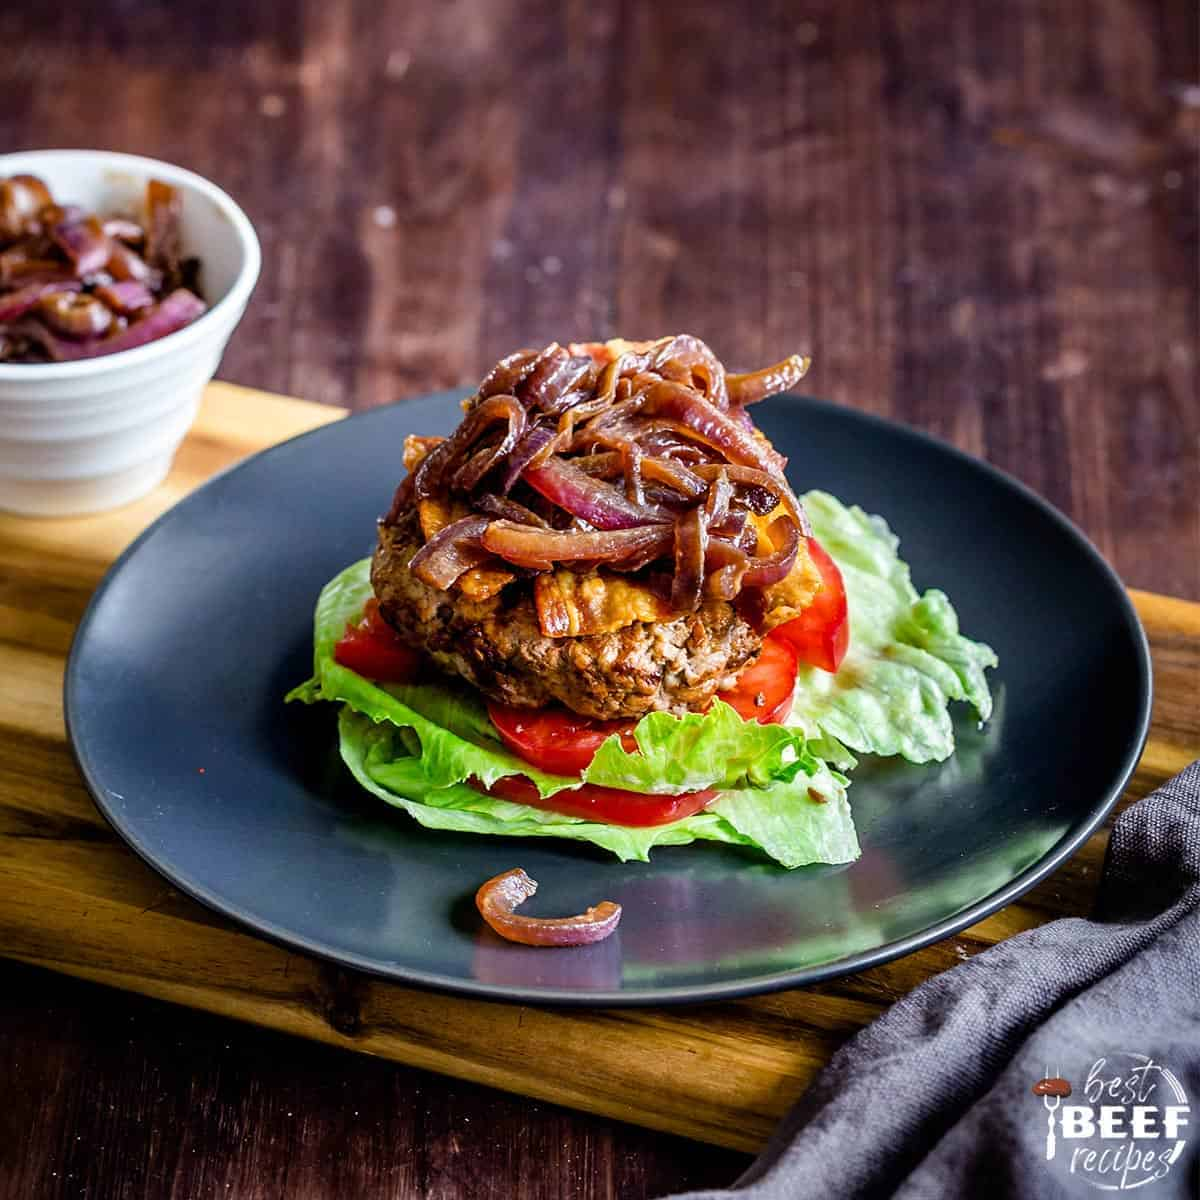 Keto burgers topped with caramelized onions on a bed of tomatoes and lettuce